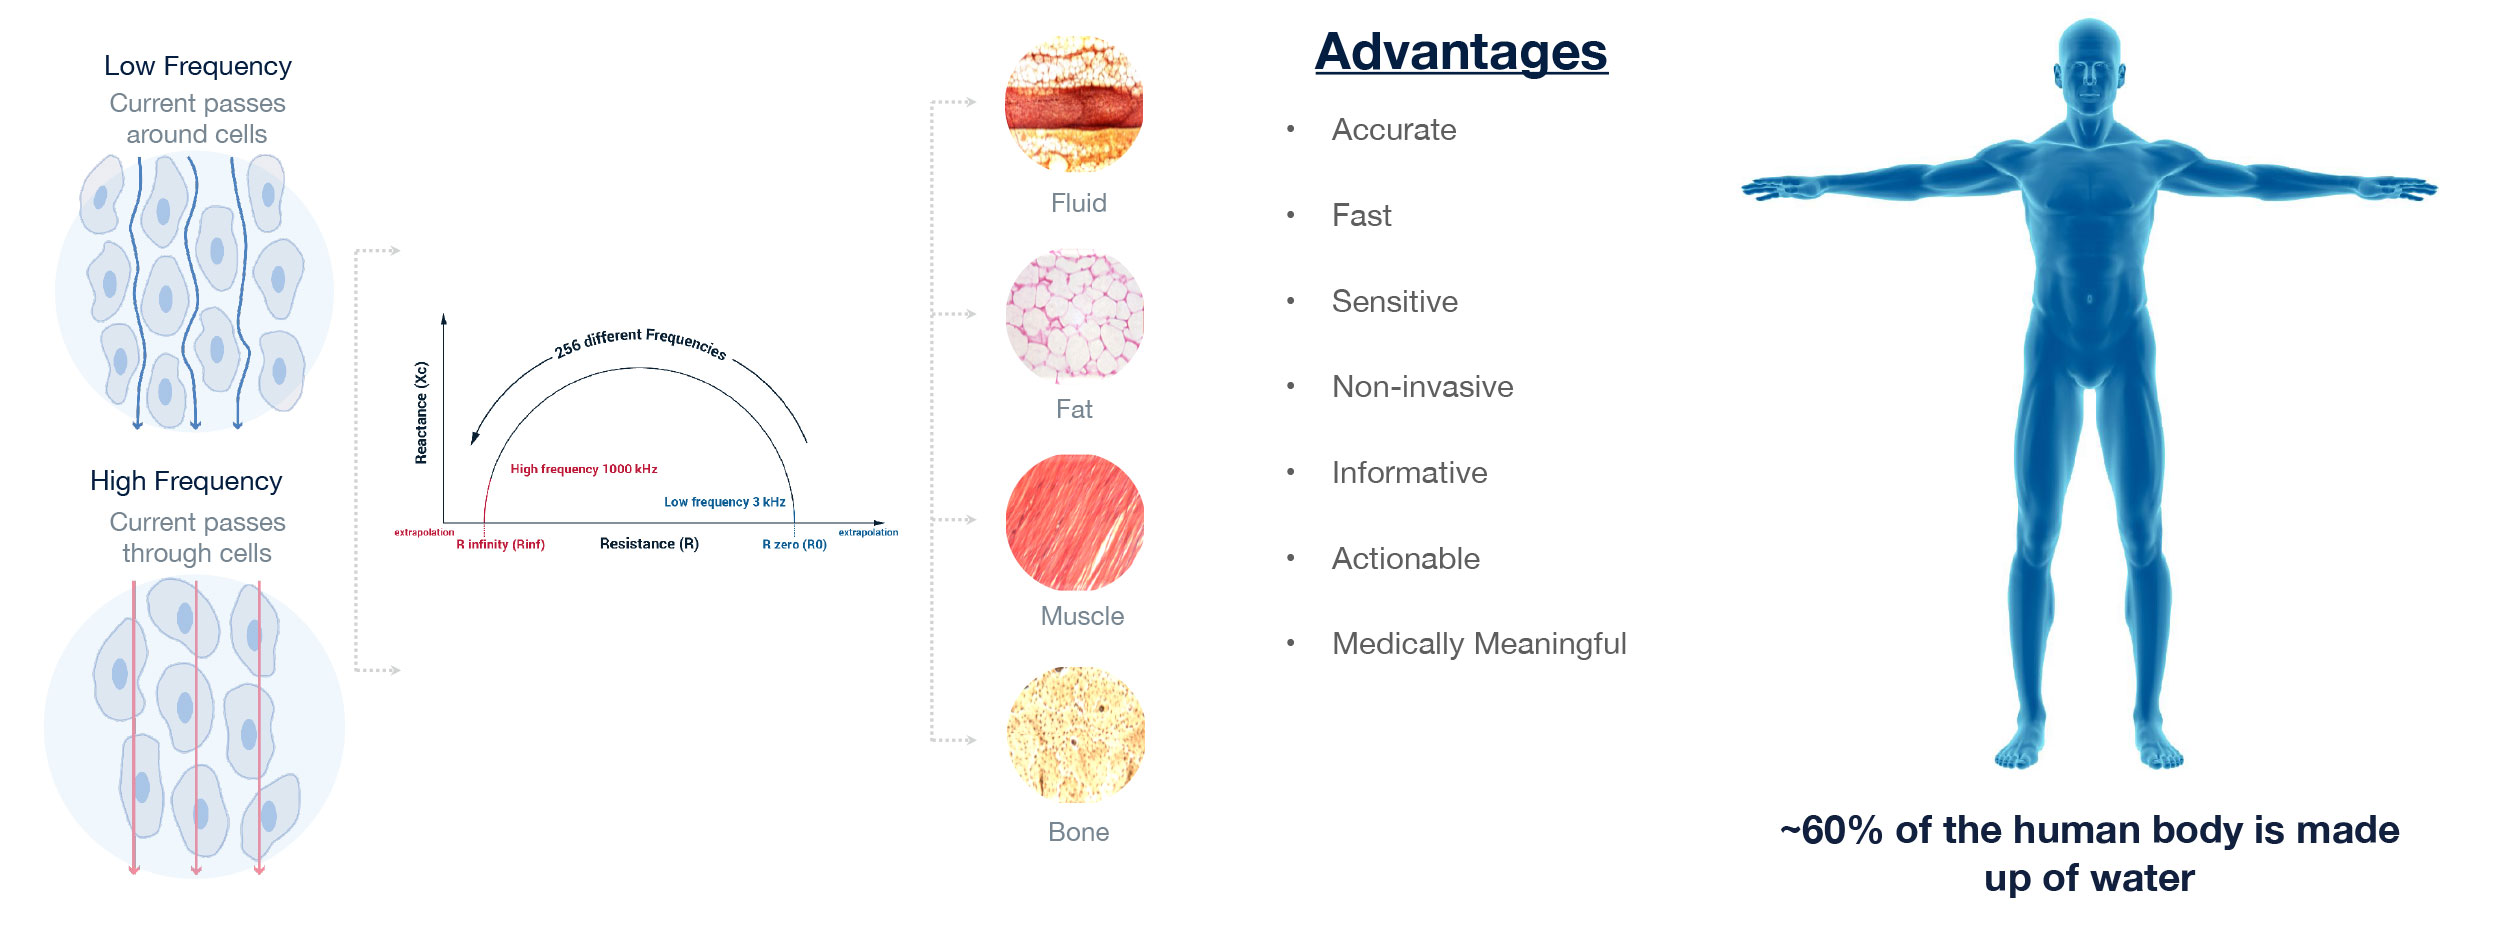 BIS technology is non-invasive, and provides fast, accurate and medically meaningful information